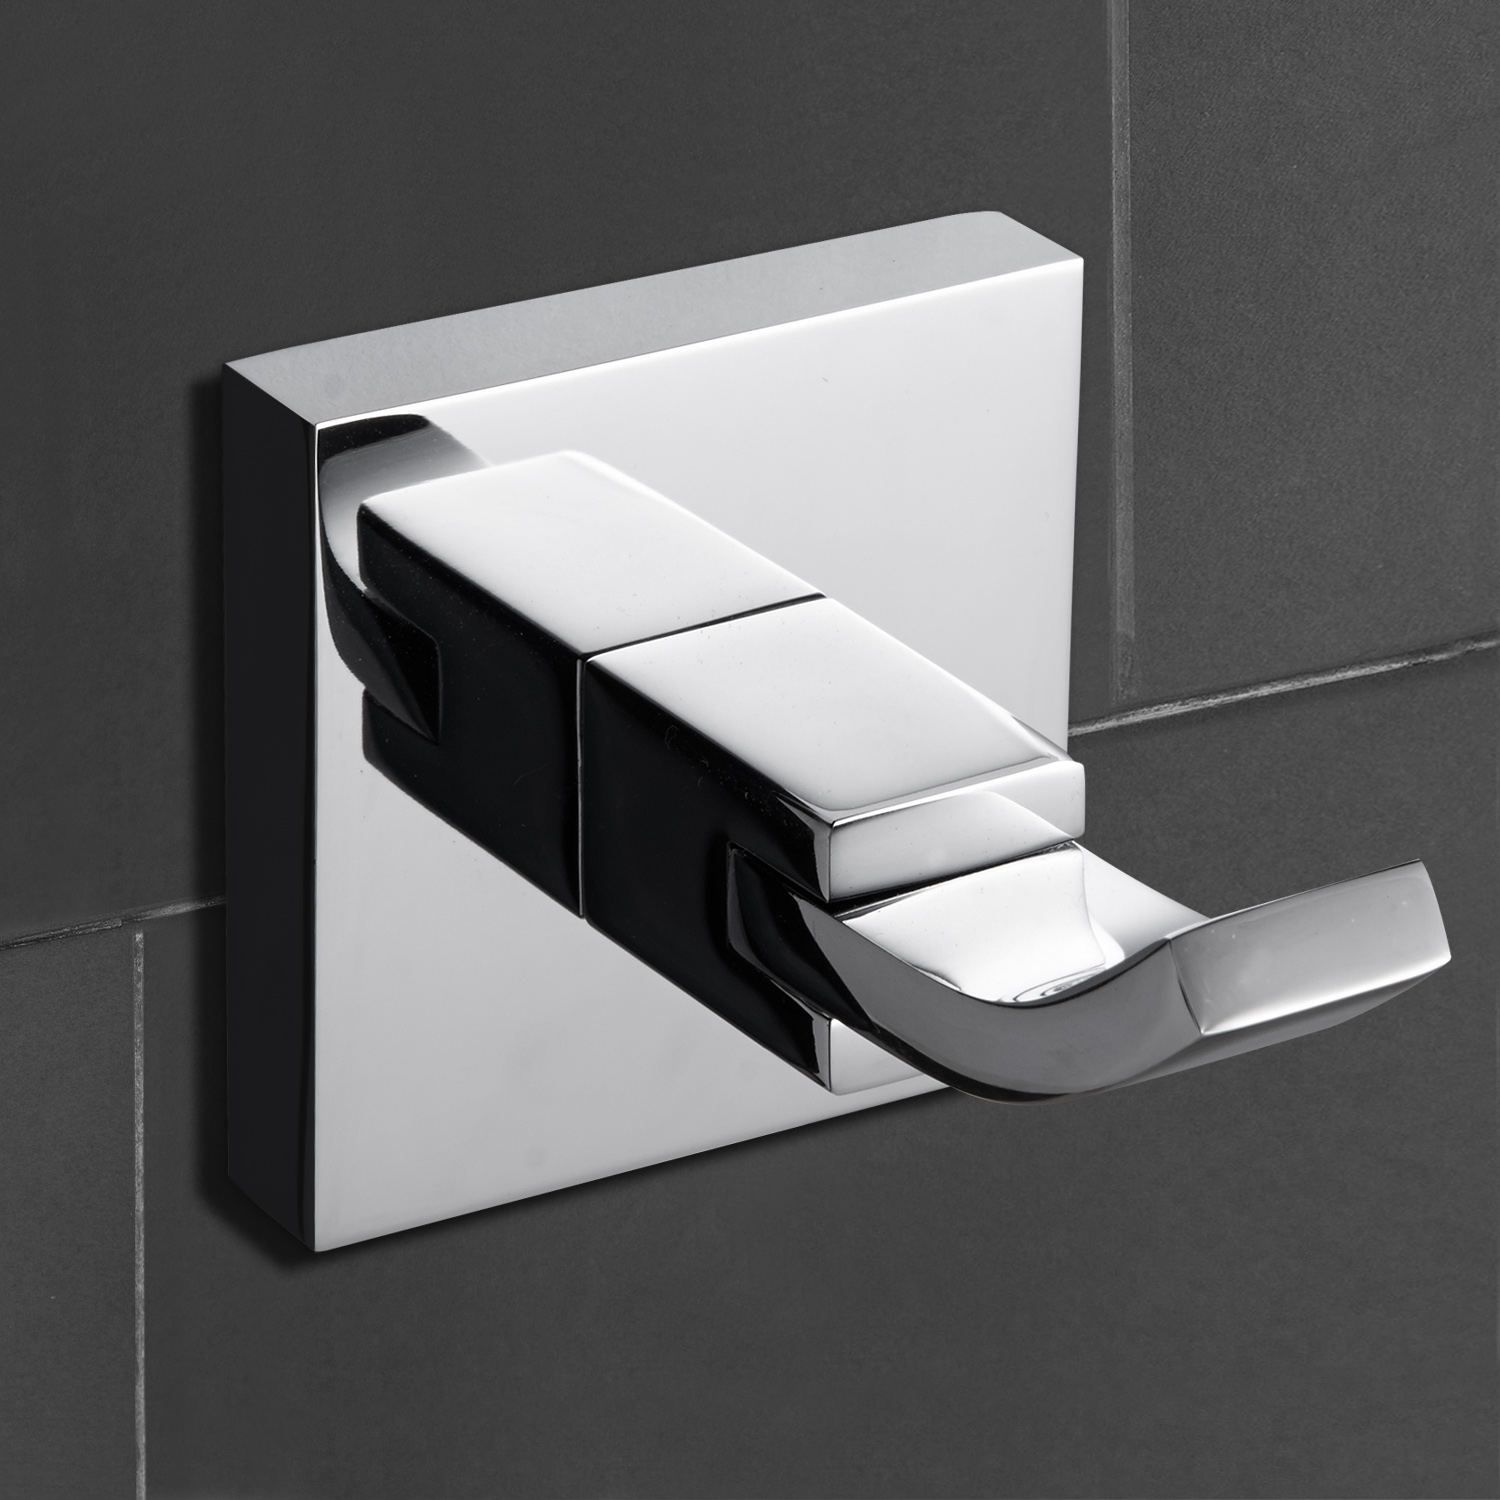 Chrome brass bathroom kitchen robe hook wall mounted - Chrome and brass bathroom accessories ...